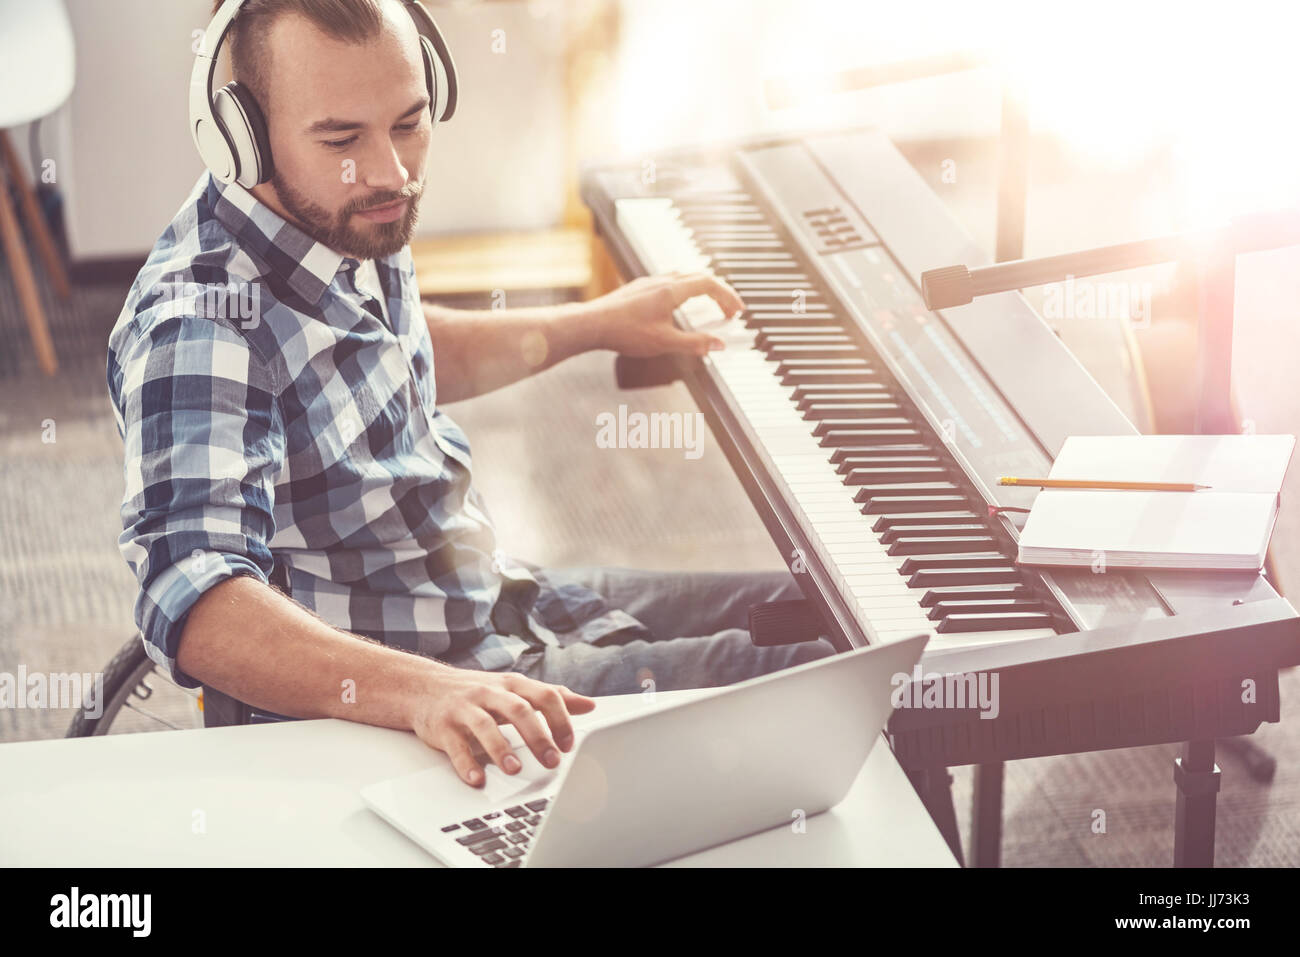 Delighted bearded man making new single - Stock Image